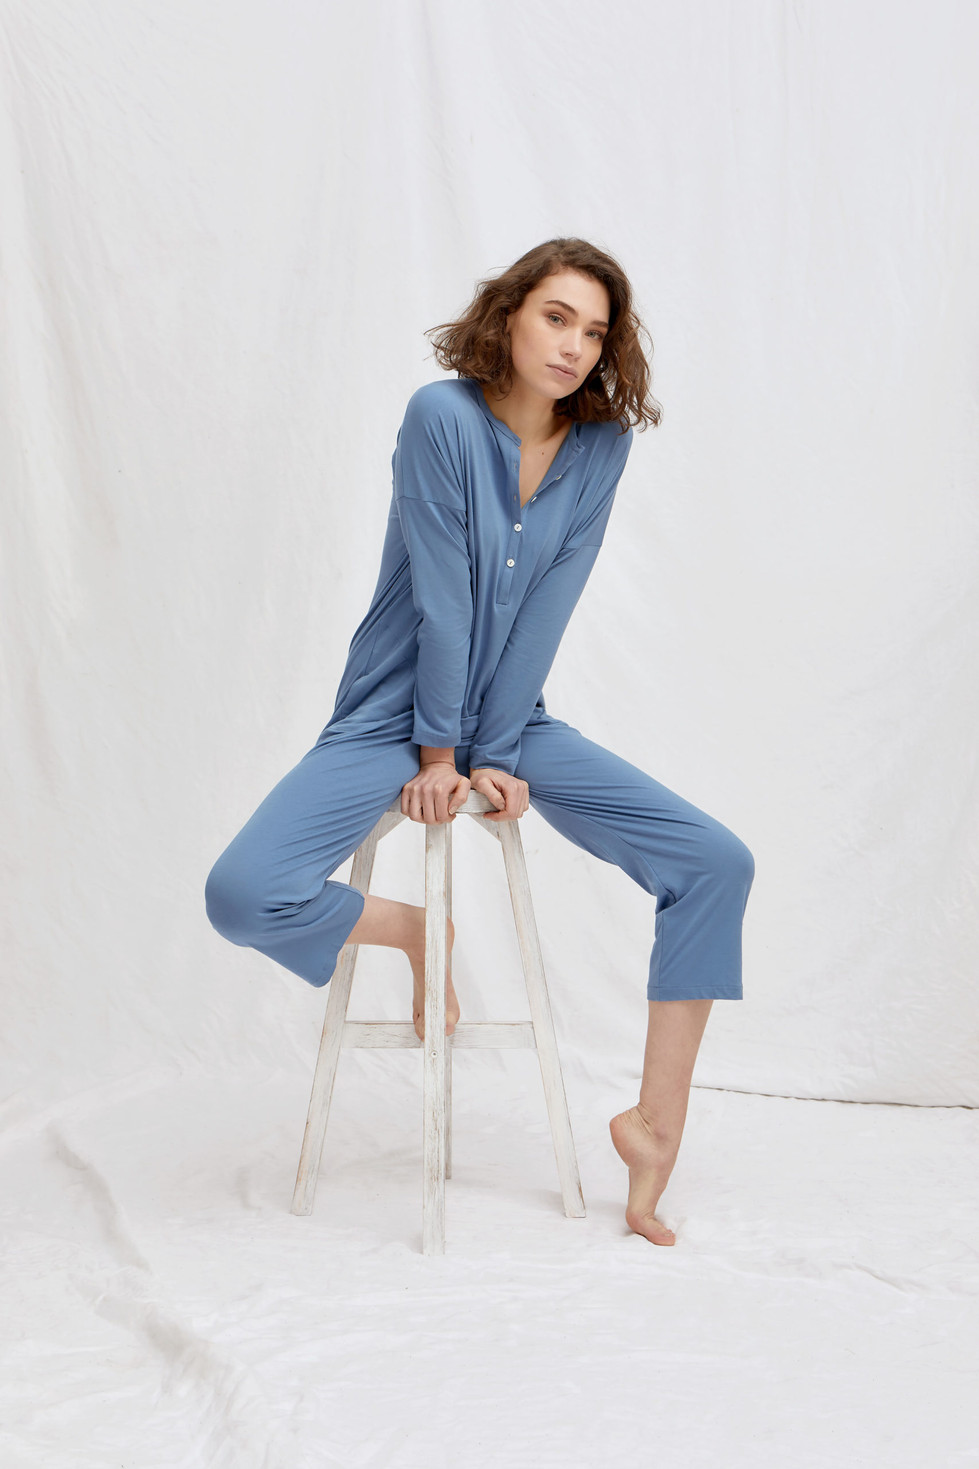 SUNDAY IN BED AW2019/20